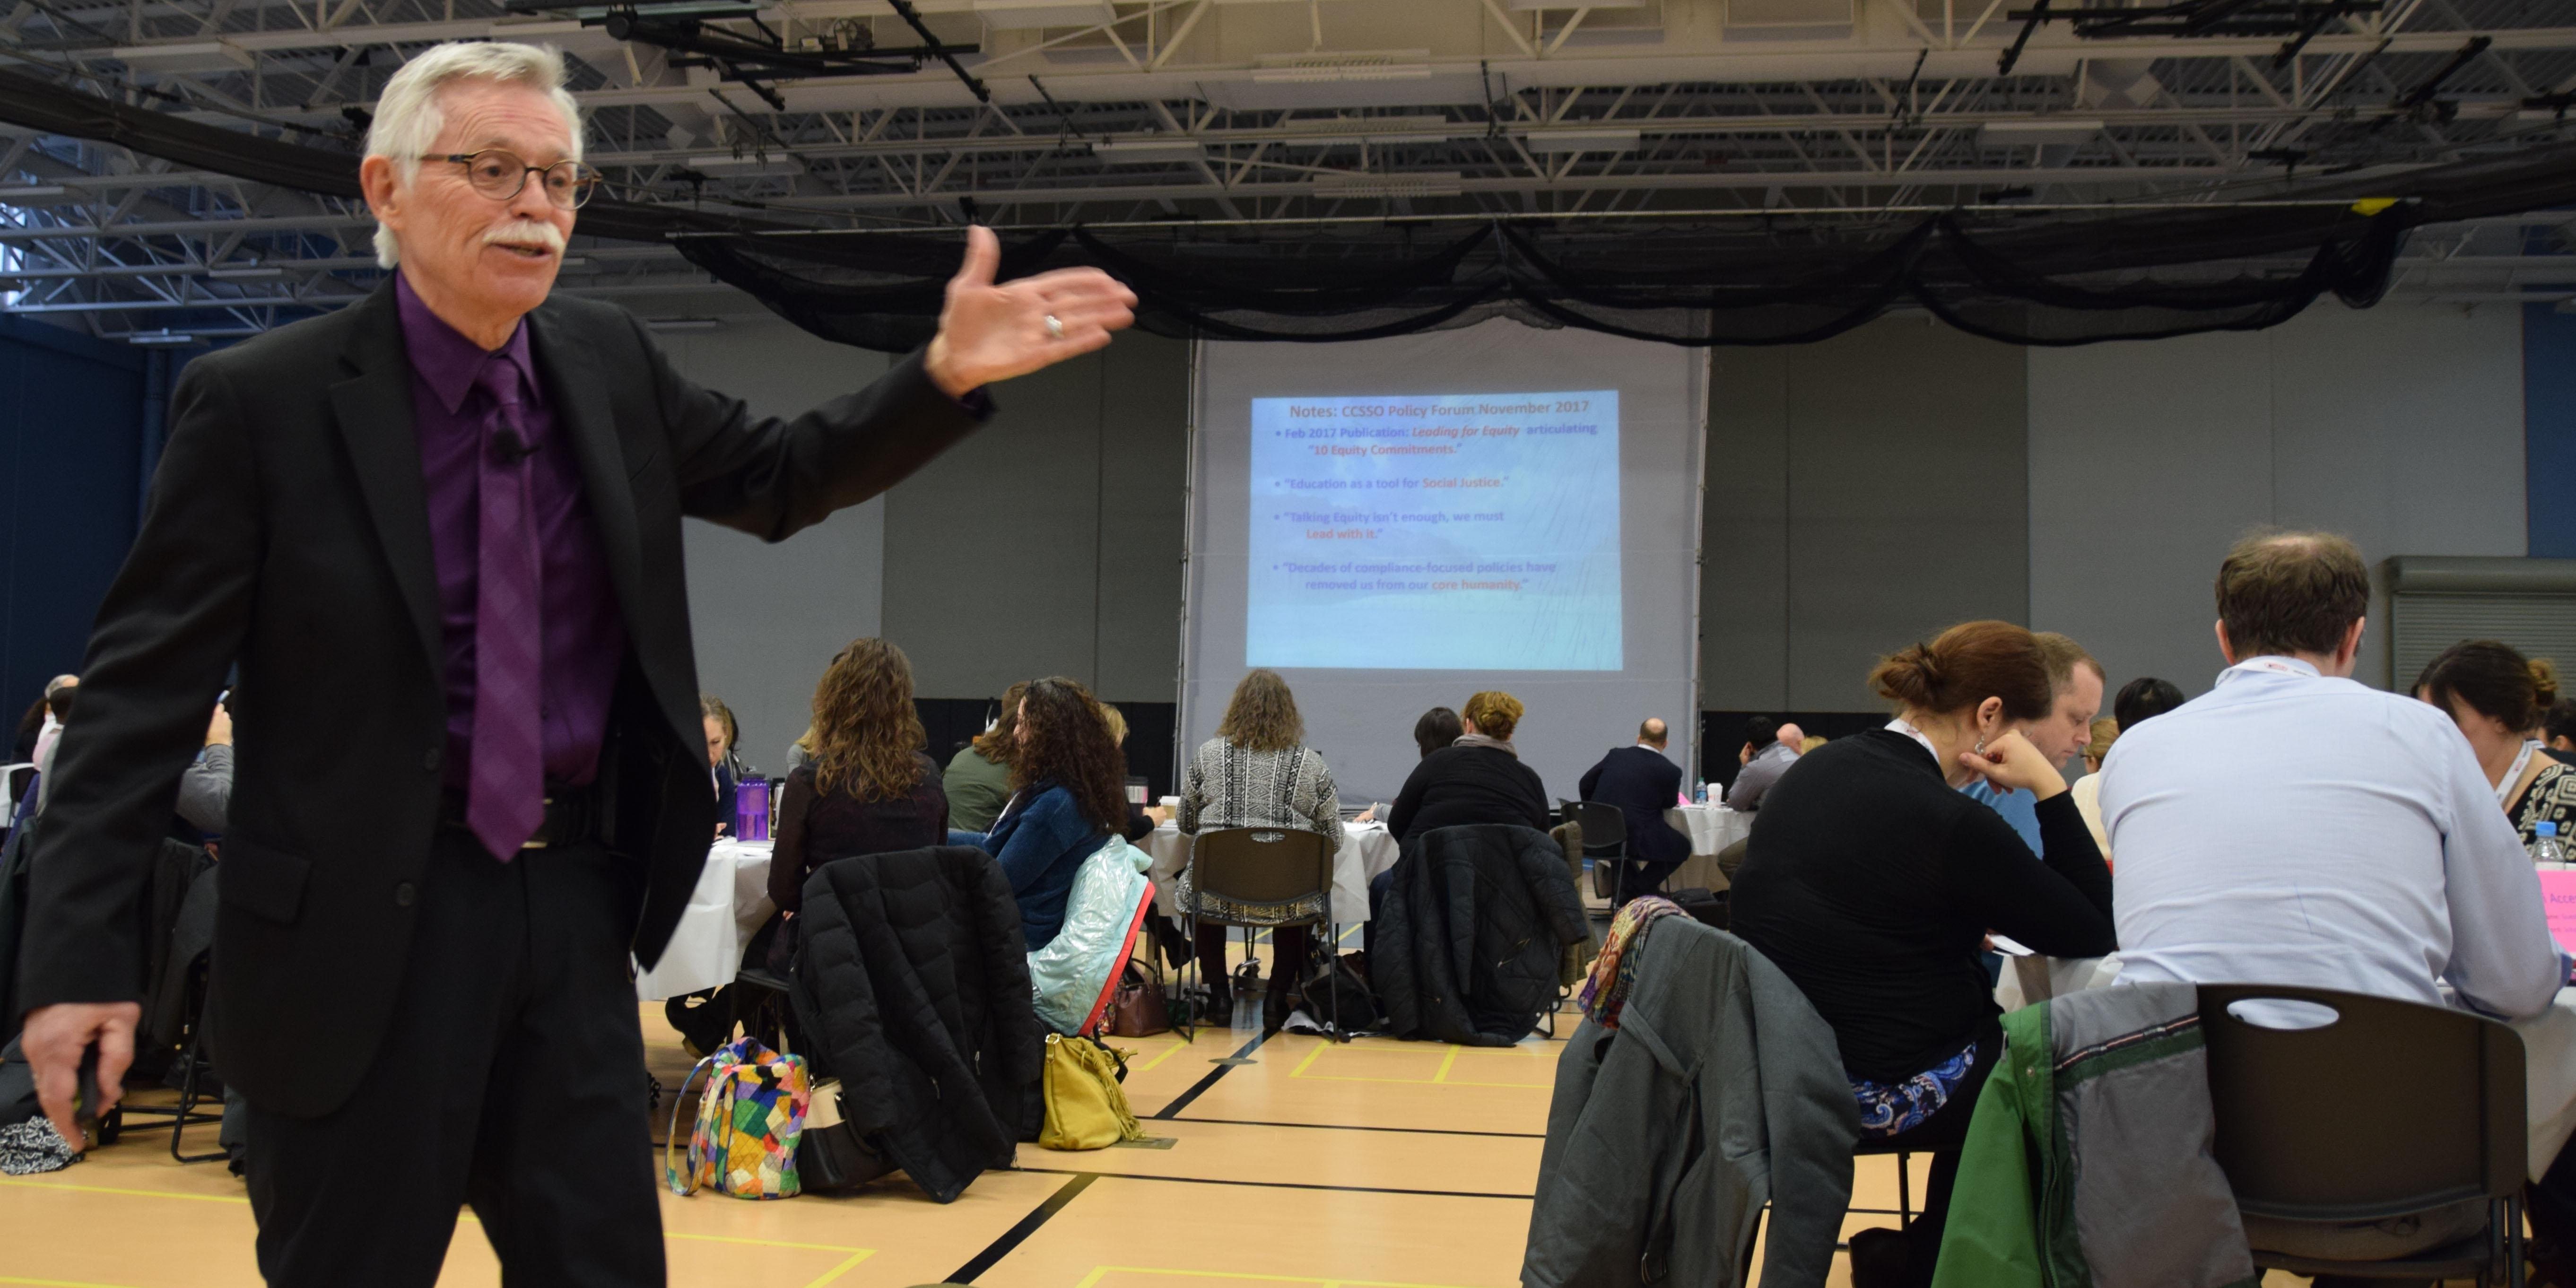 District 88 and DuPage Regional Office of Education host Deep Equity and cultural competency events for school districts